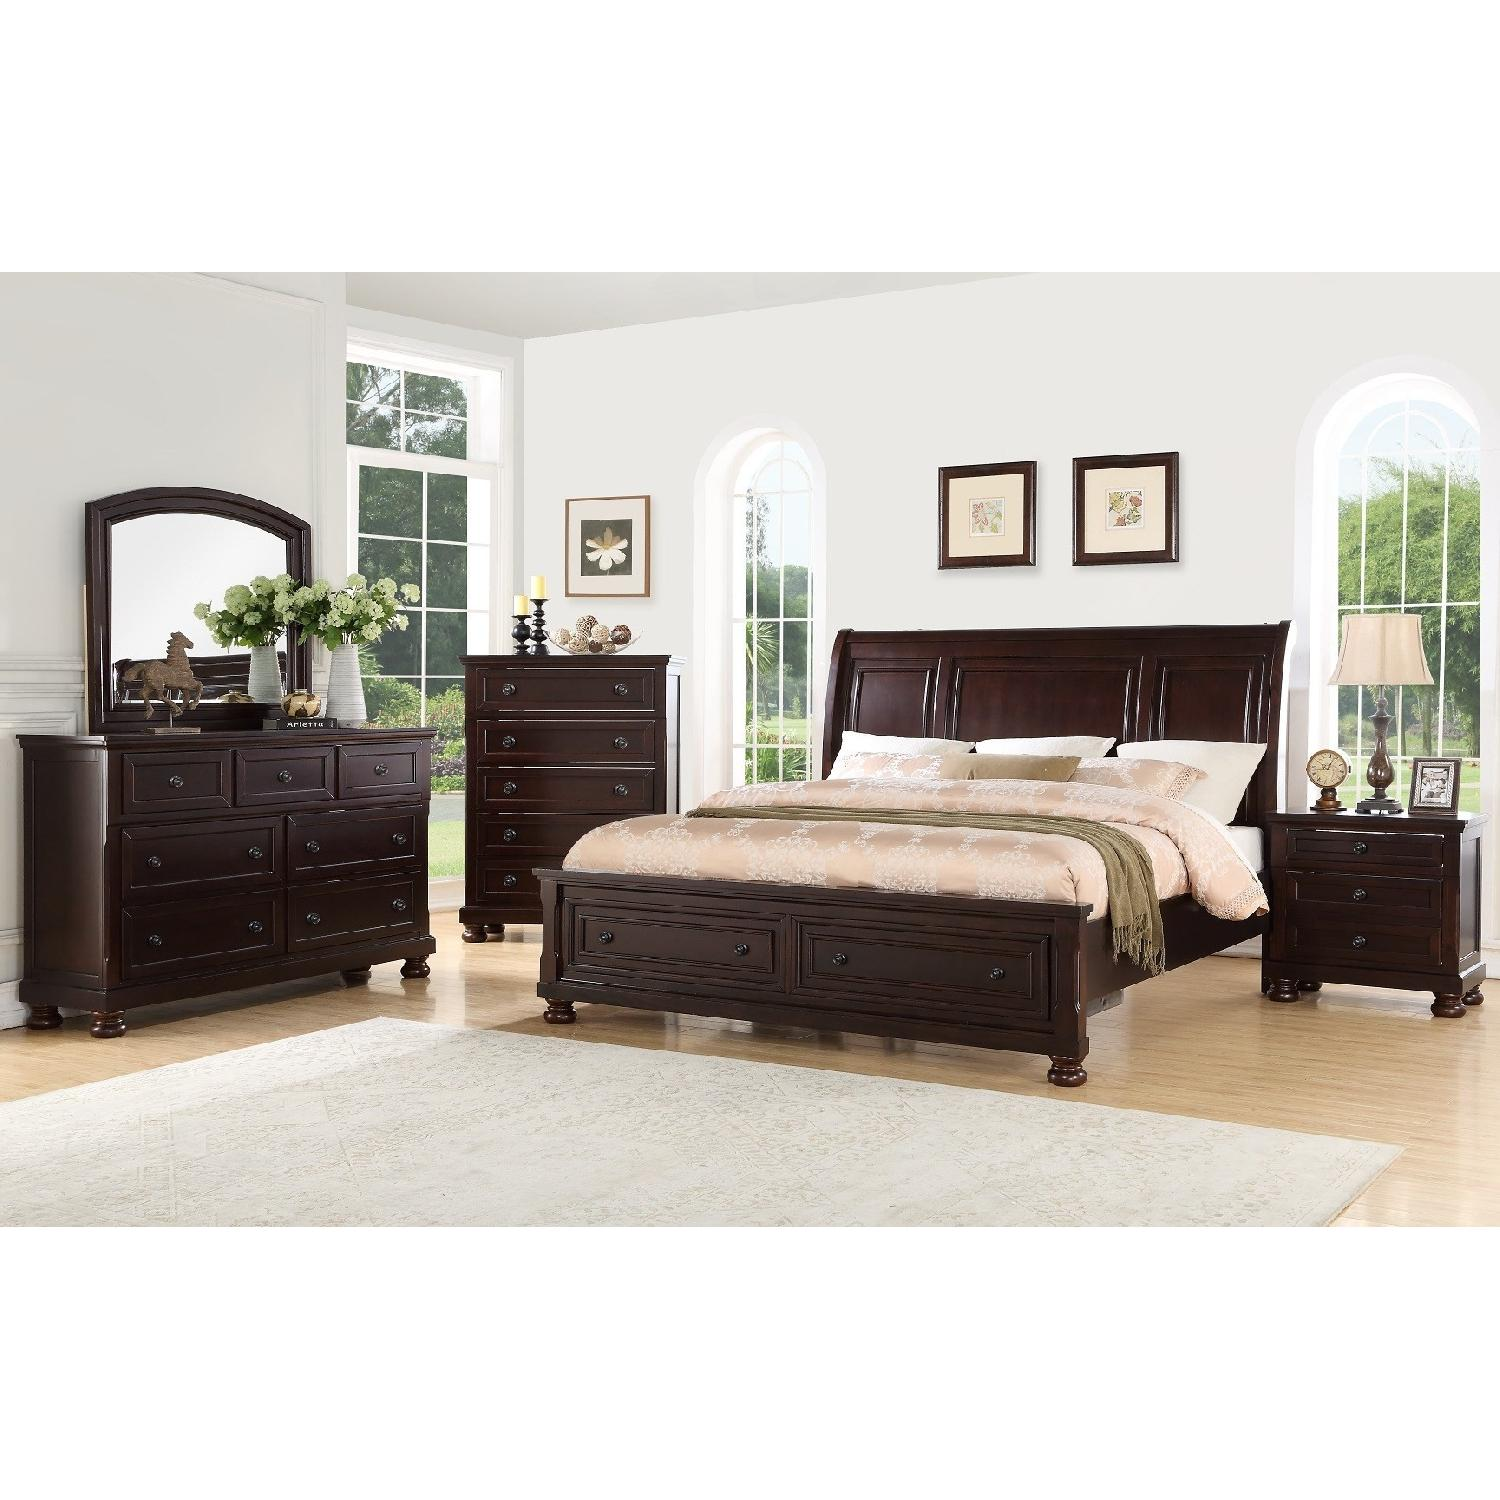 Shaker Style 9-Drawer Dresser in Antique Mink Finish - image-2